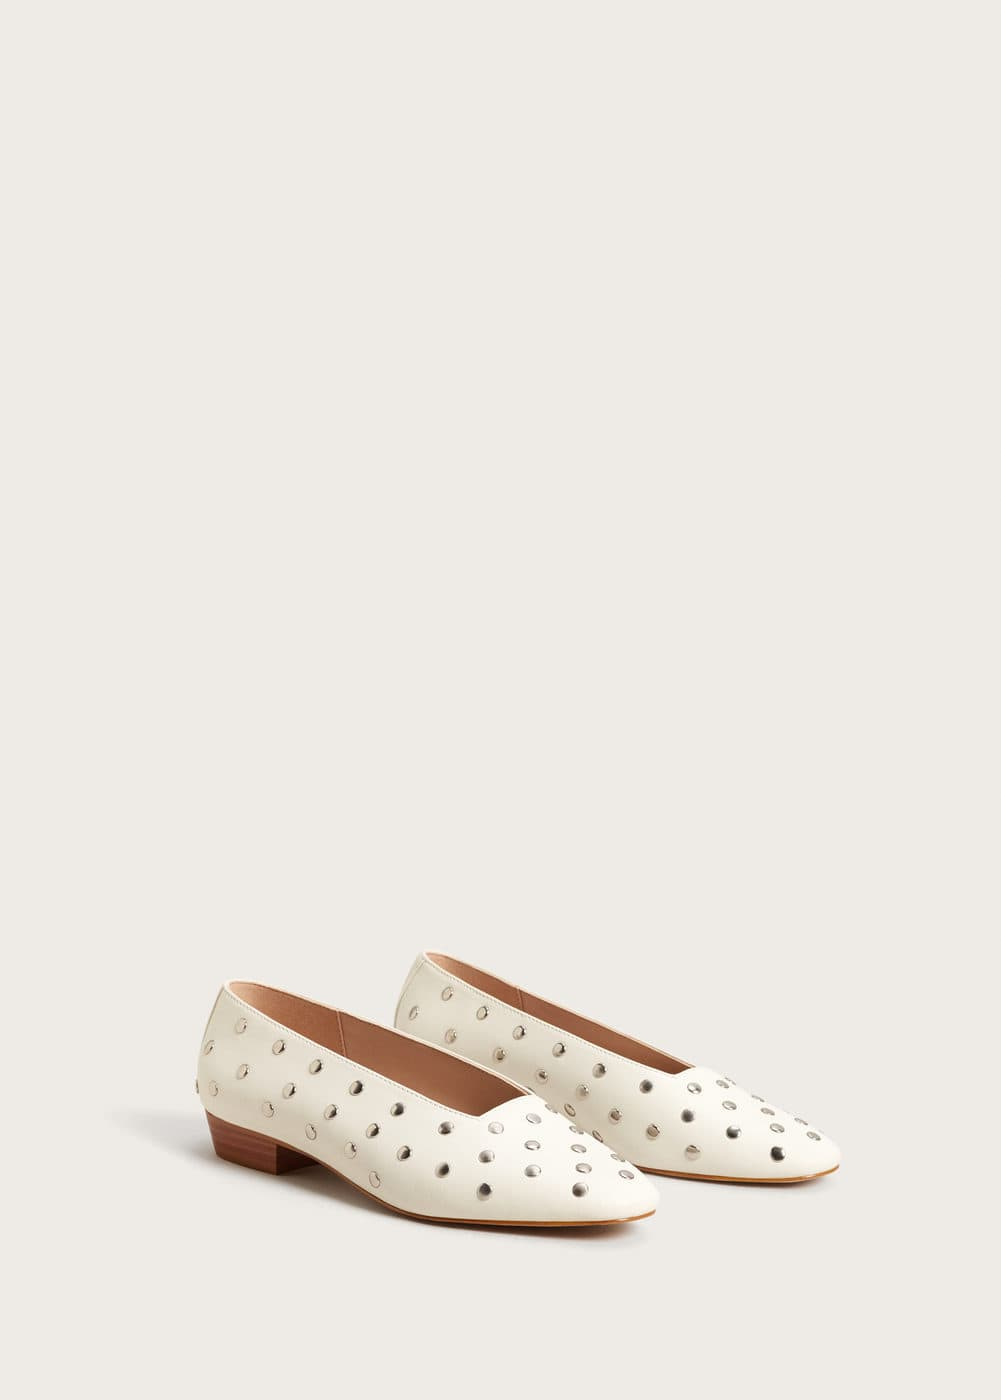 Studded leather shoes | VIOLETA BY MANGO